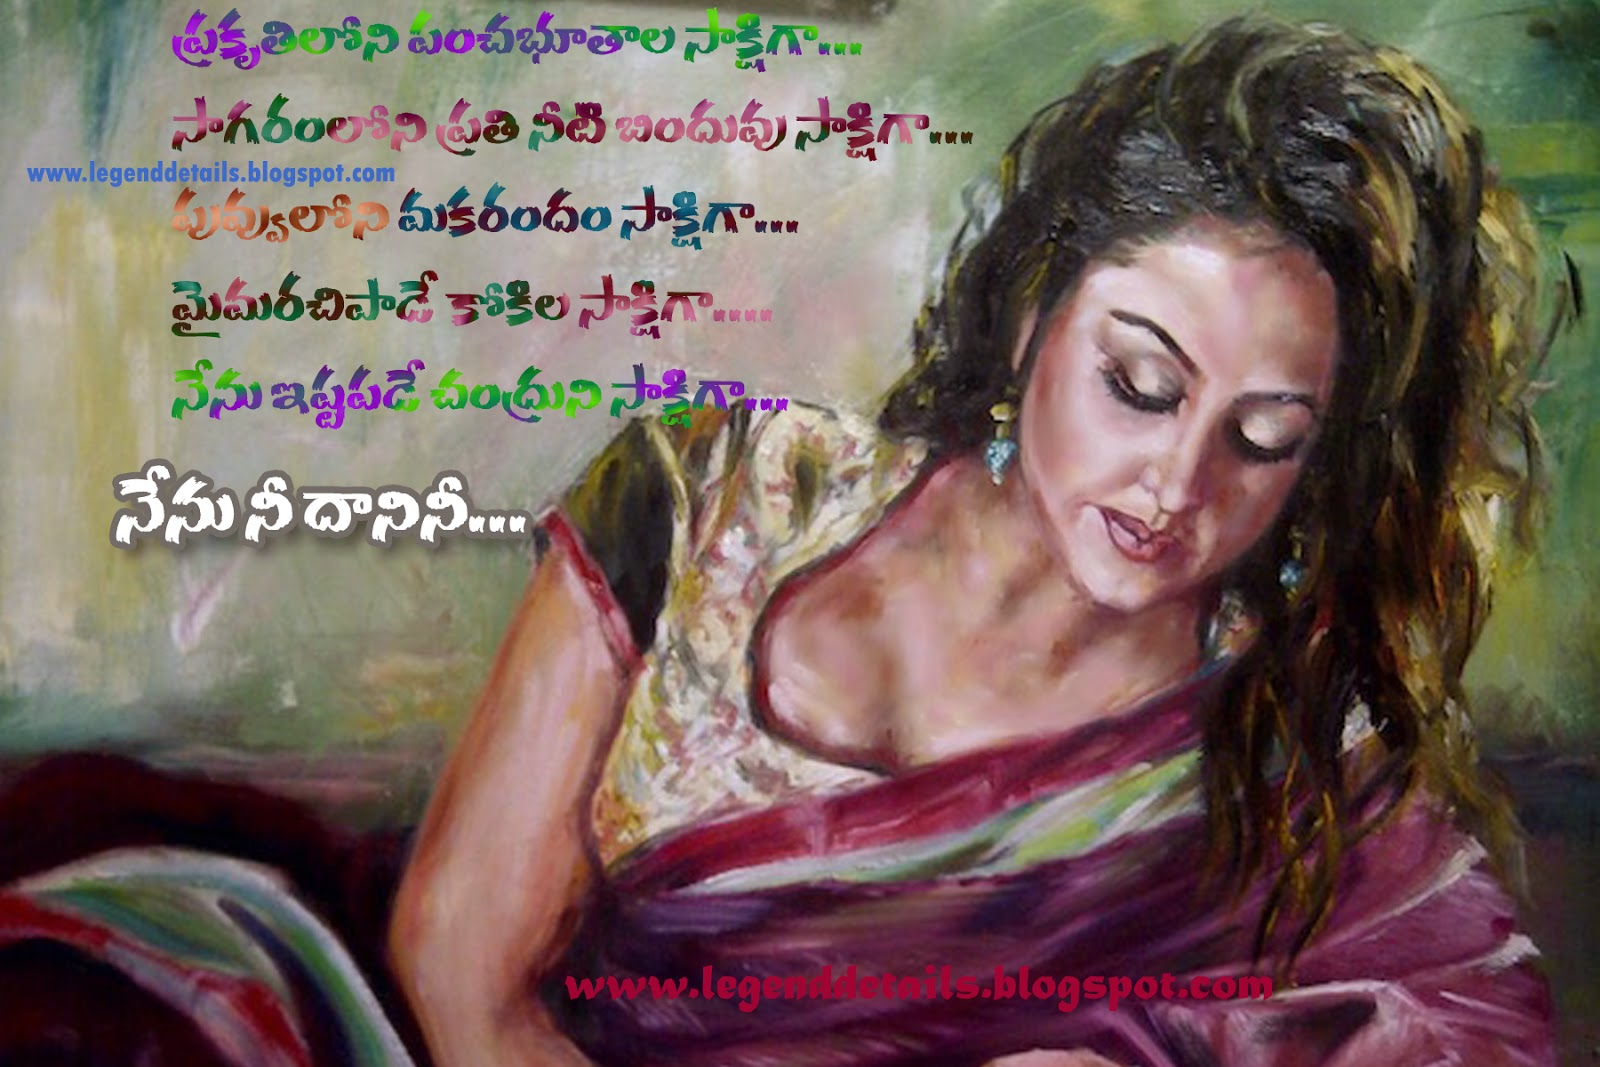 Deep Love Quotes For Her In Telugu : Deep Love Poems for Him in telugu HD Wall Papers Legendary Quotes ...